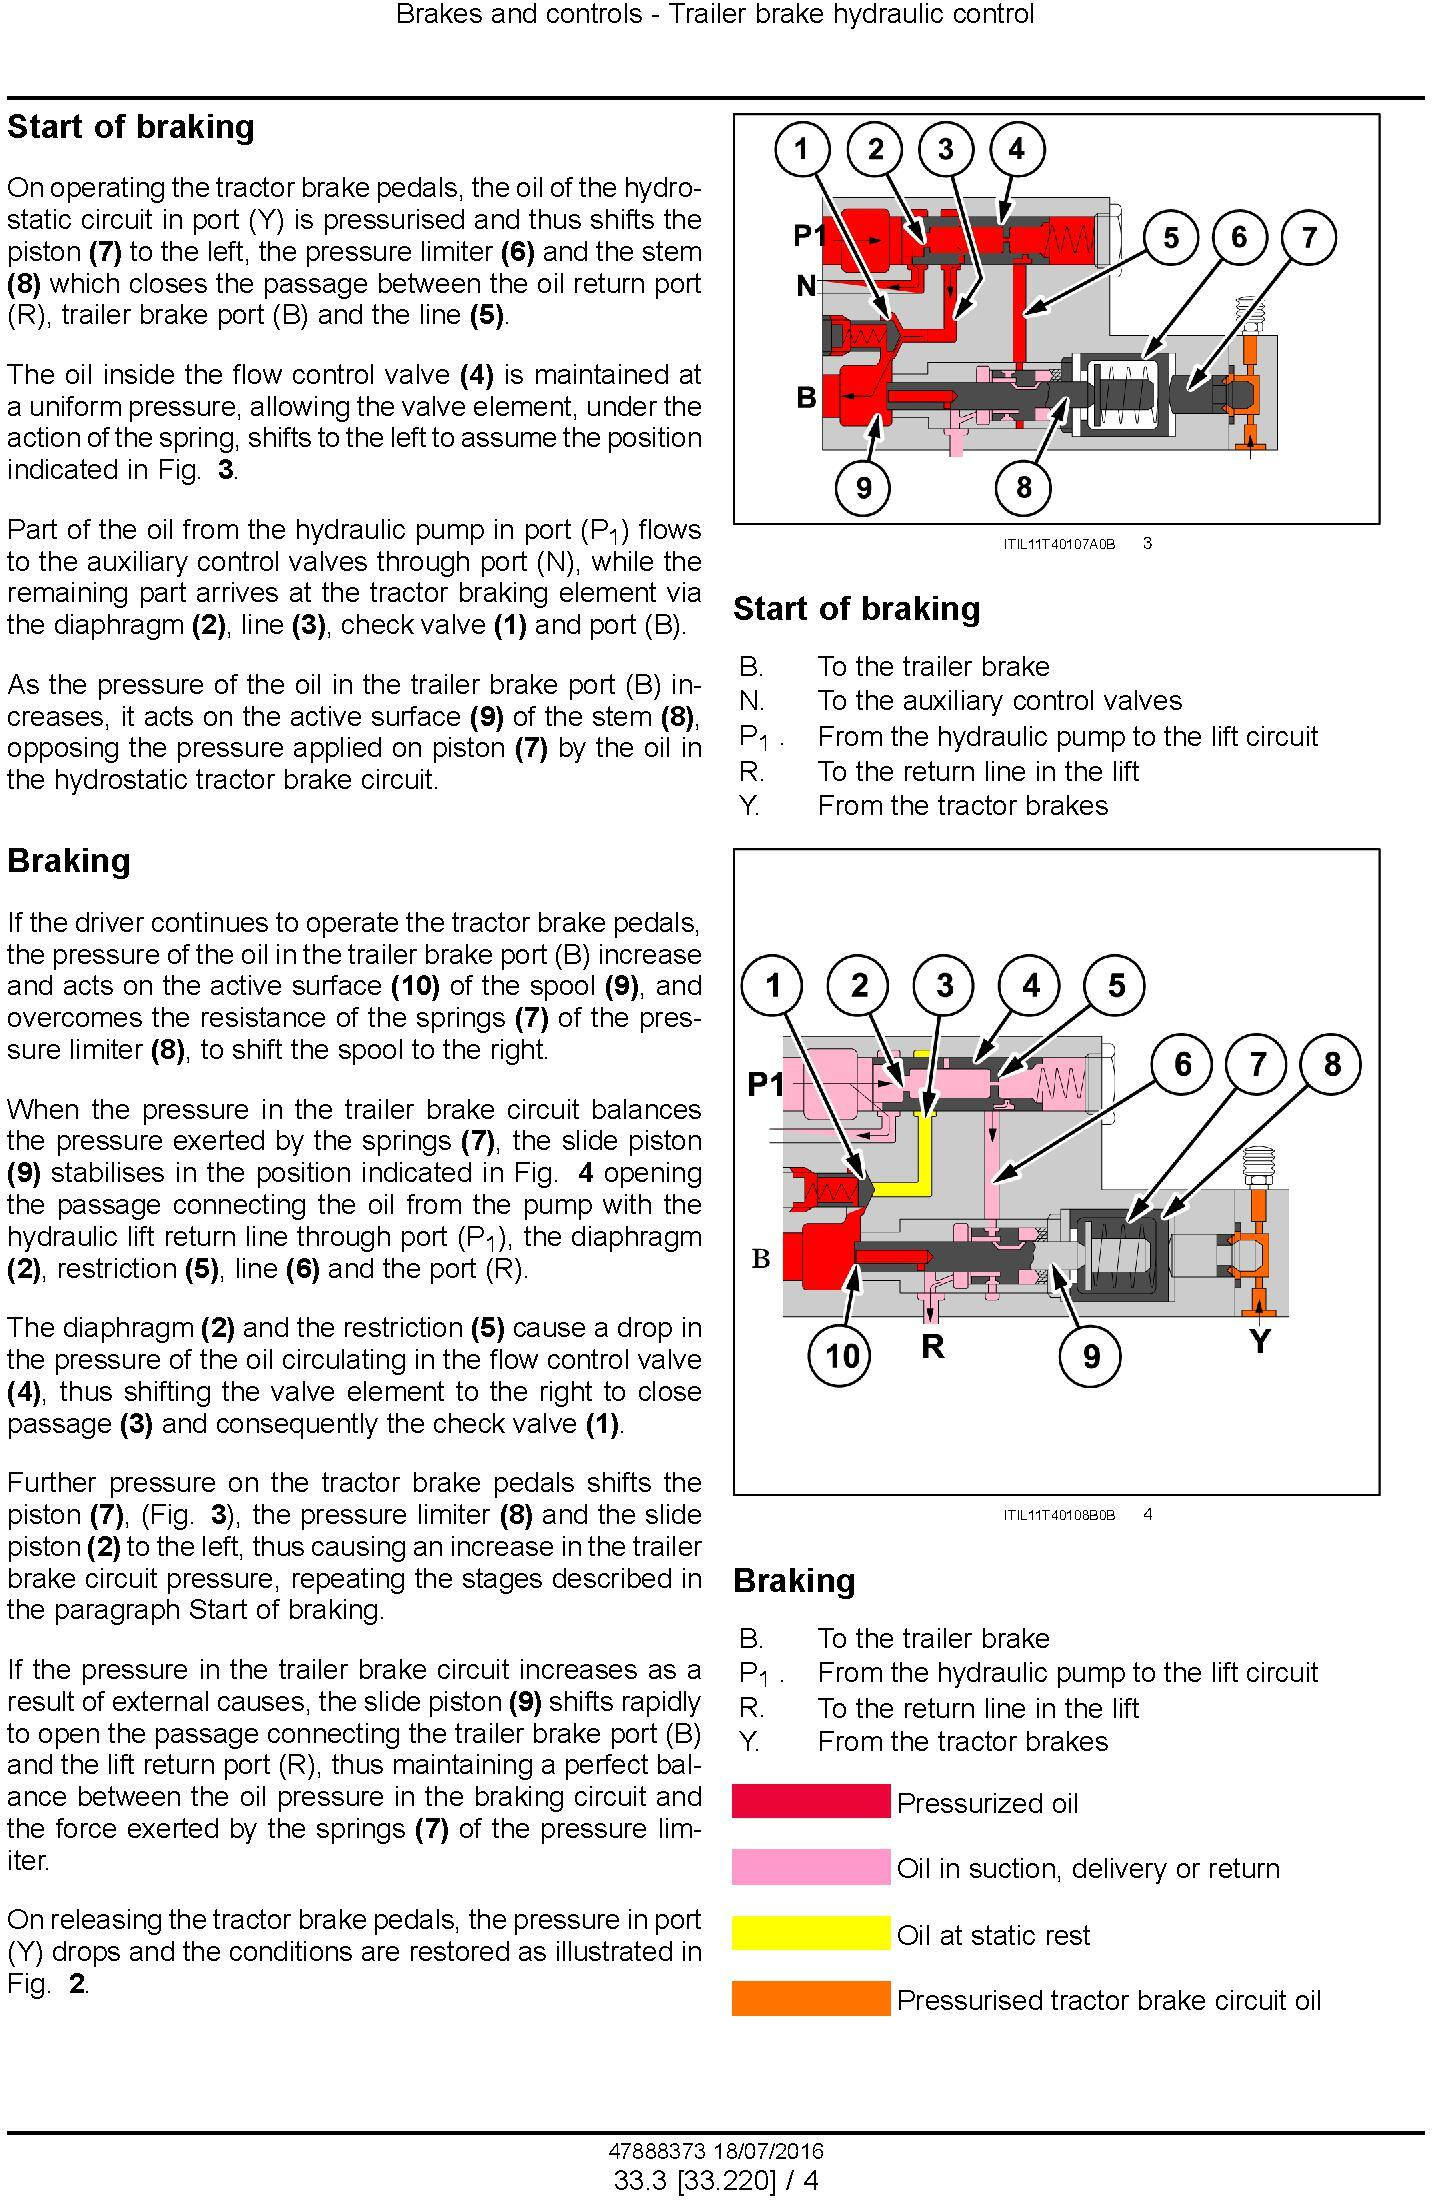 New Holland T4.75N T4.85N T4.95N T4.105N; T4.65V T4.75V T4.85V T4.95V T4.105V Tractor Service Manual - 1